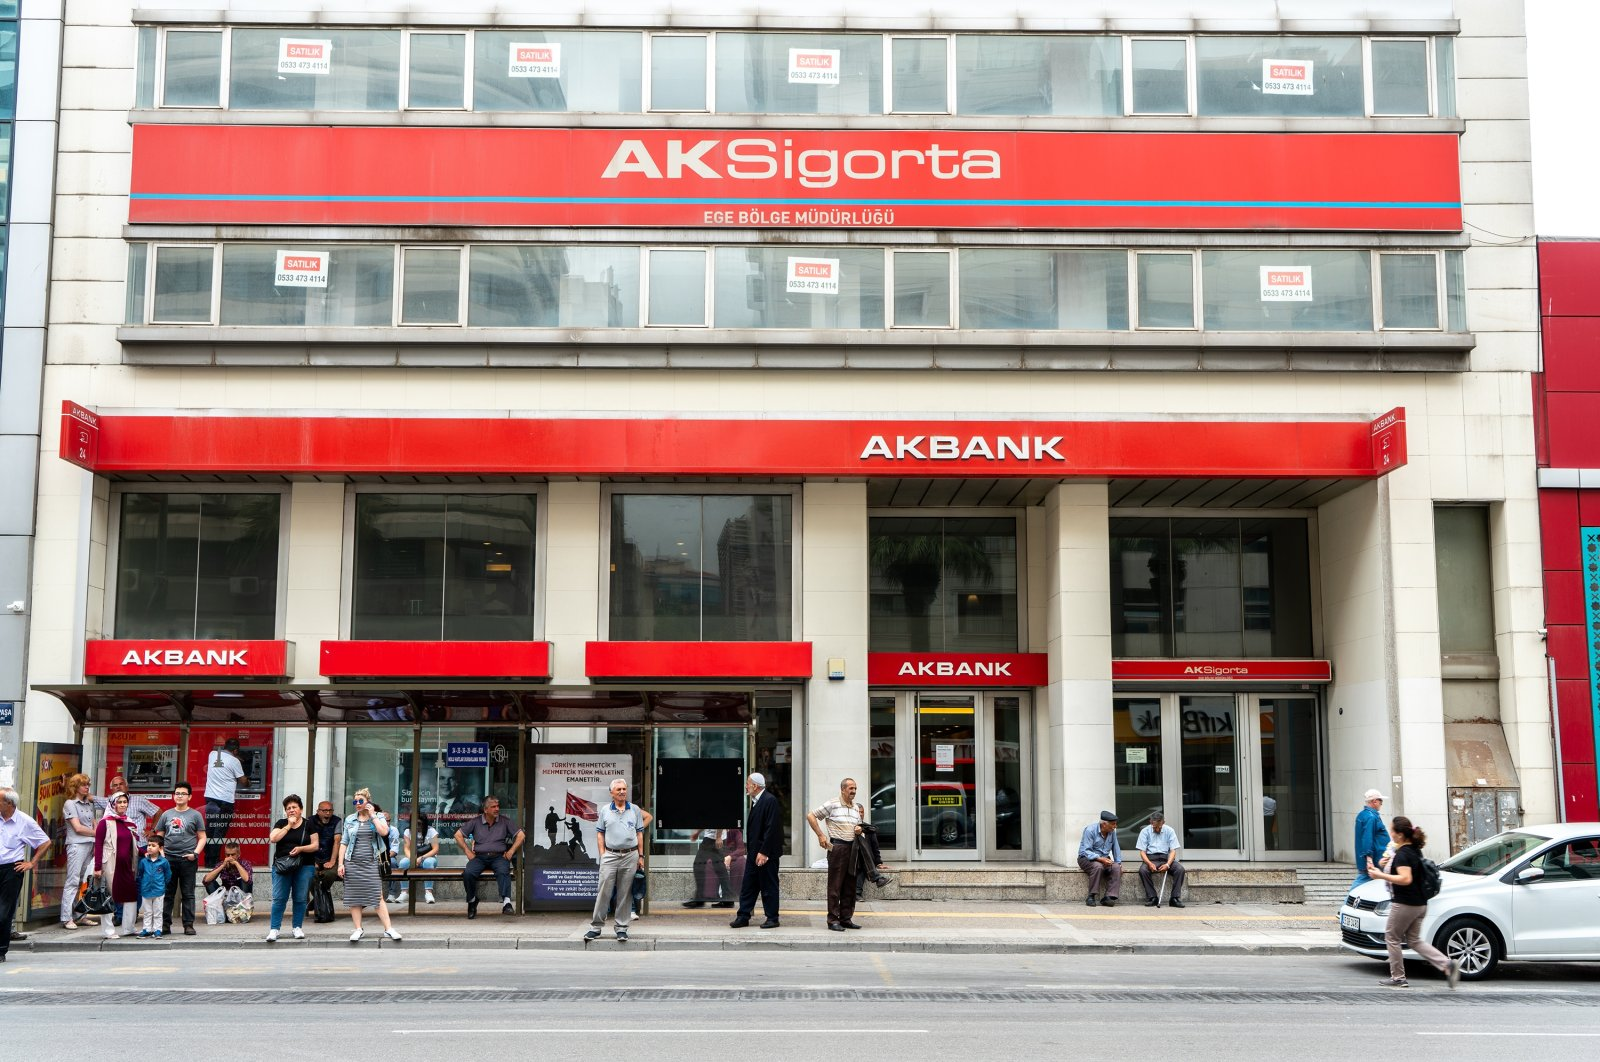 An Akbank branch is seen as people walk by and wait at a bus stop, İzmir, western Turkey, May 19, 2019. (Shutterstock Photo)